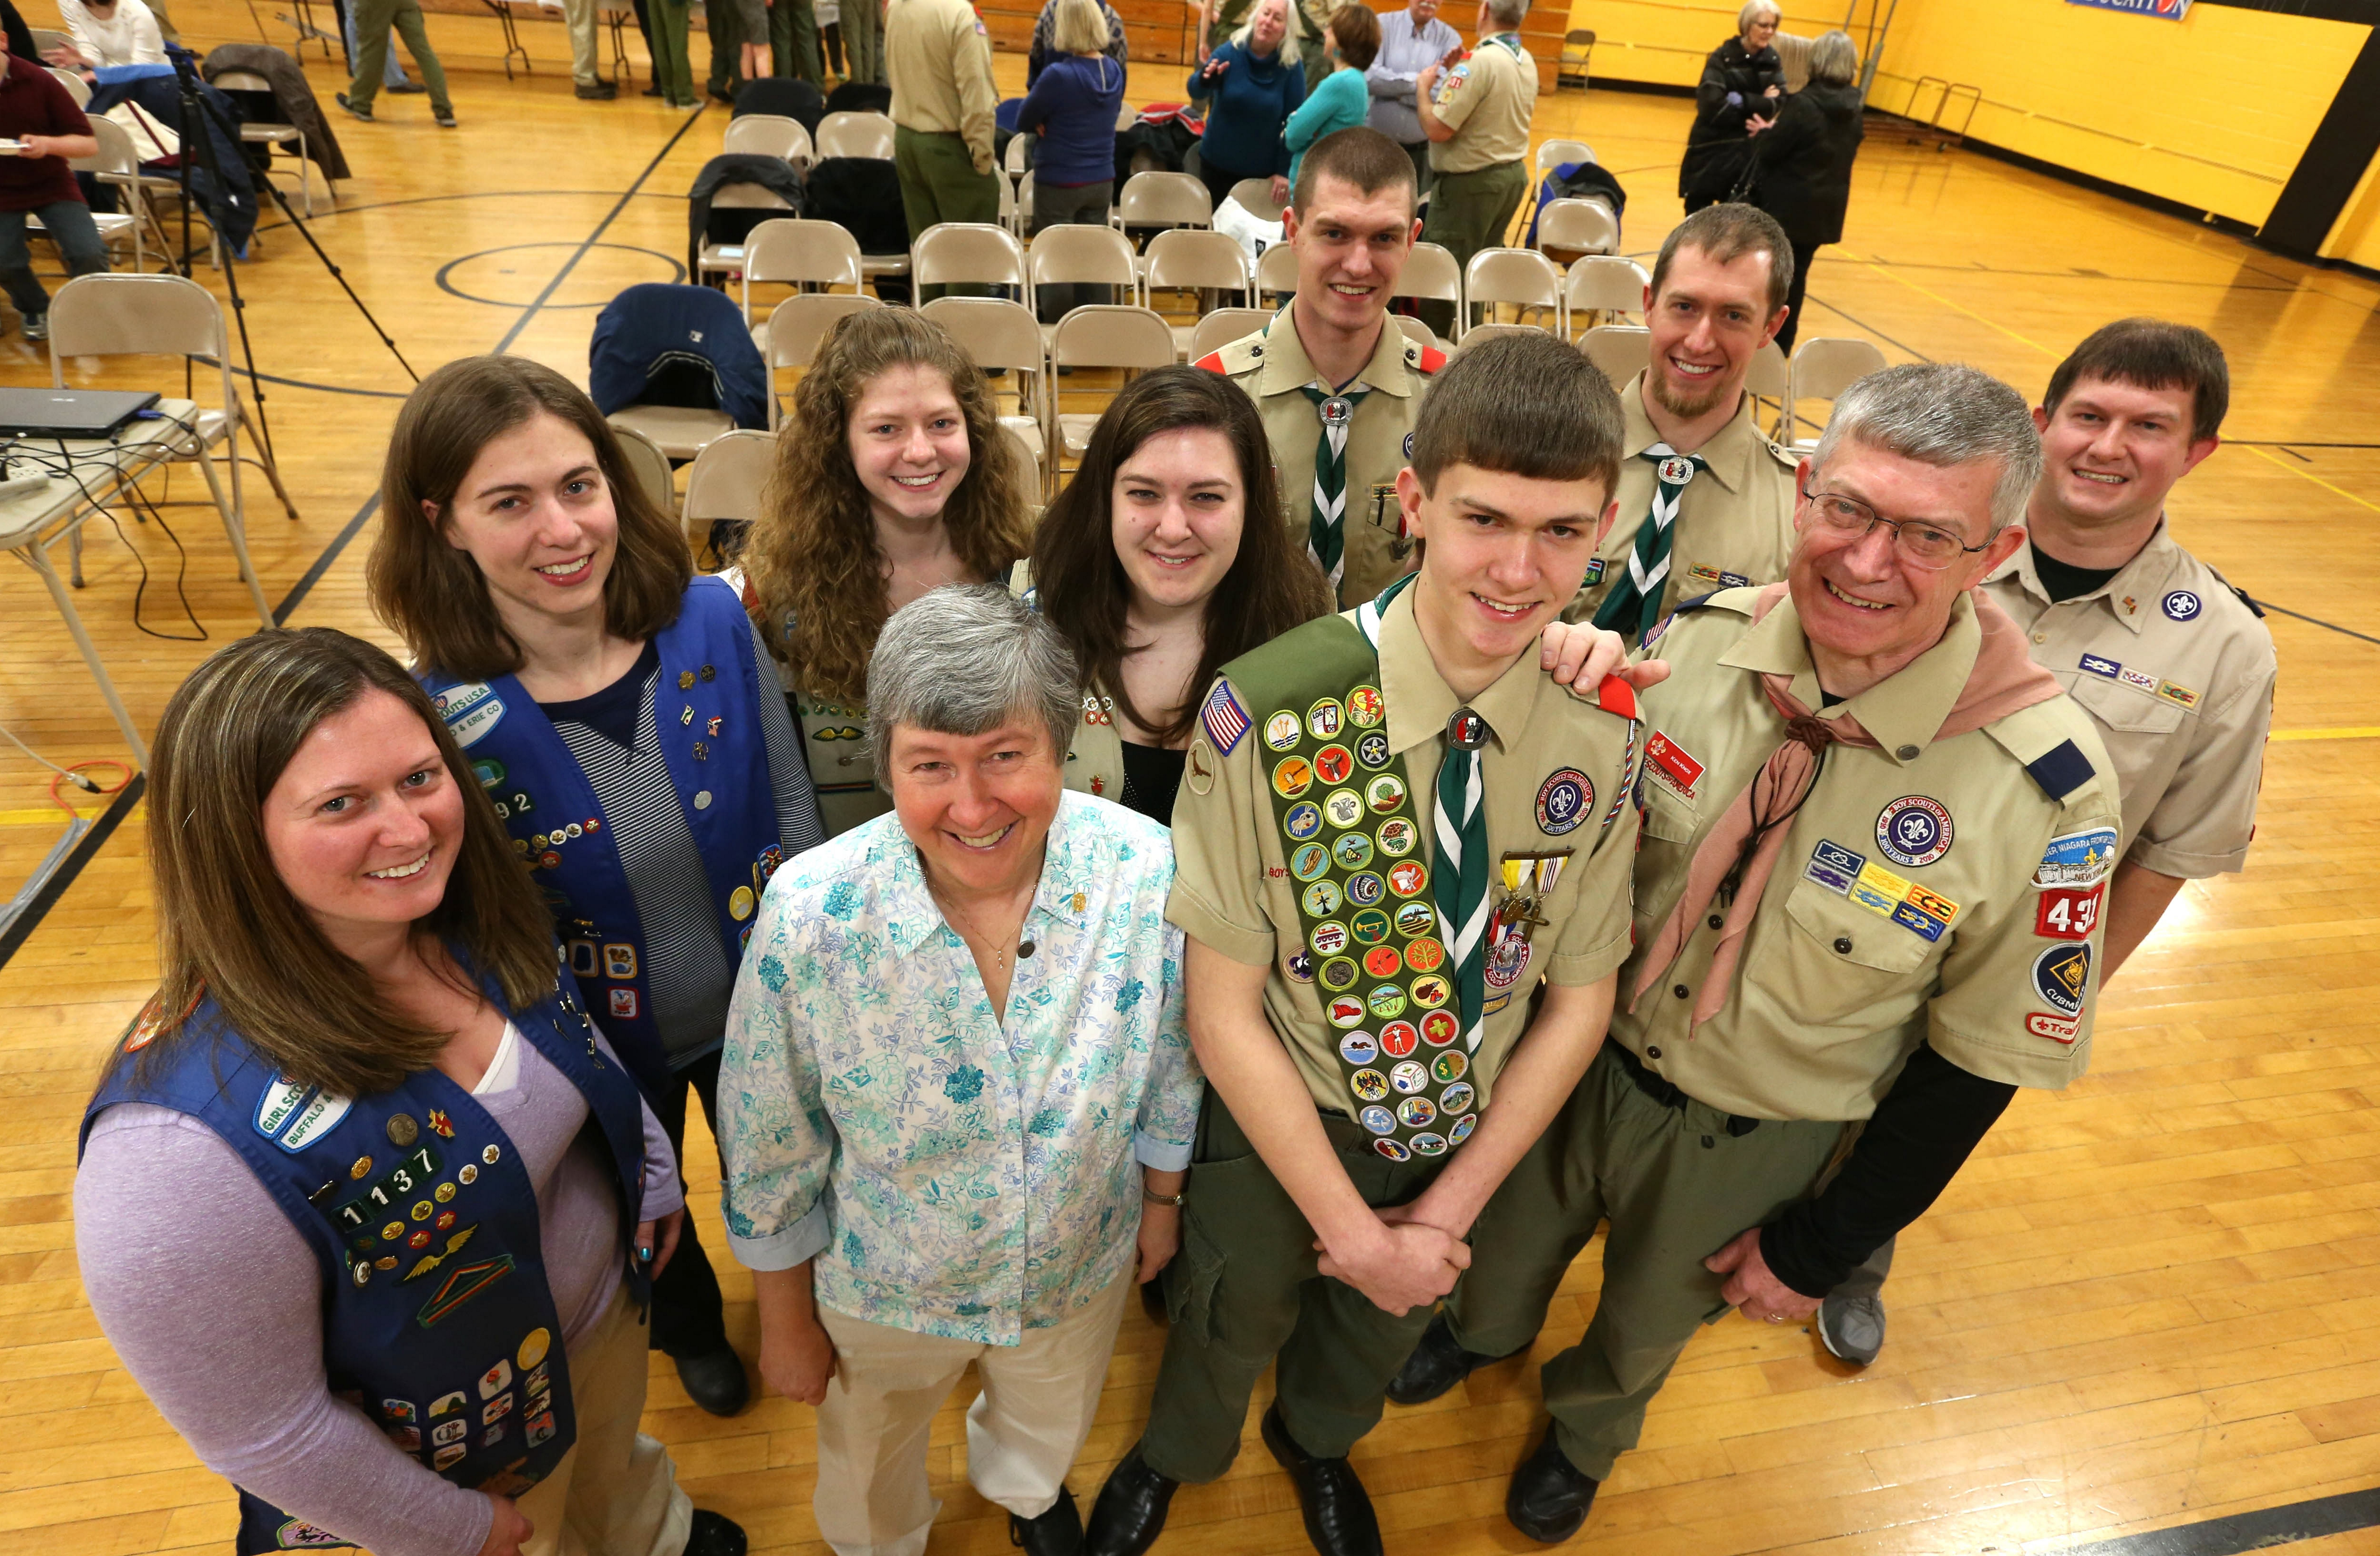 Peter Knox, 17, front, celebrates his Eagle Scout ranking with his parents Marian and Ken, and siblings, from left, Wendy, Tracy Tessier, Sarah, Heidi, Eric, Mark and Kurt.